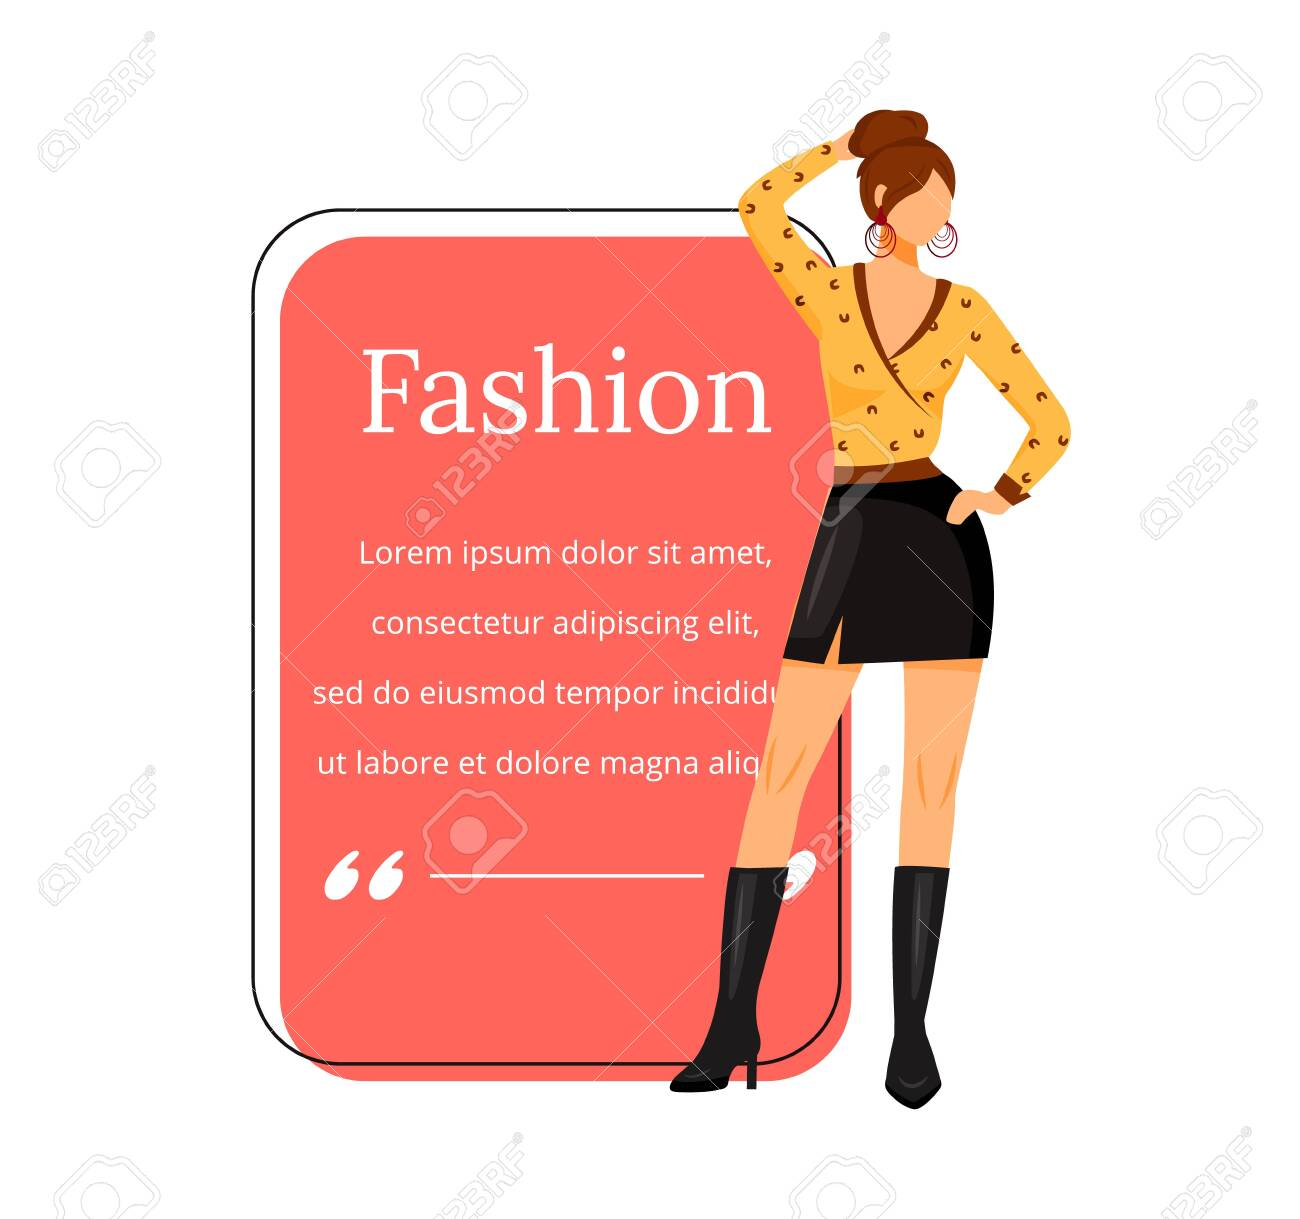 Fashion Designer Flat Color Vector Character Quote Individual Royalty Free Cliparts Vectors And Stock Illustration Image 138655748